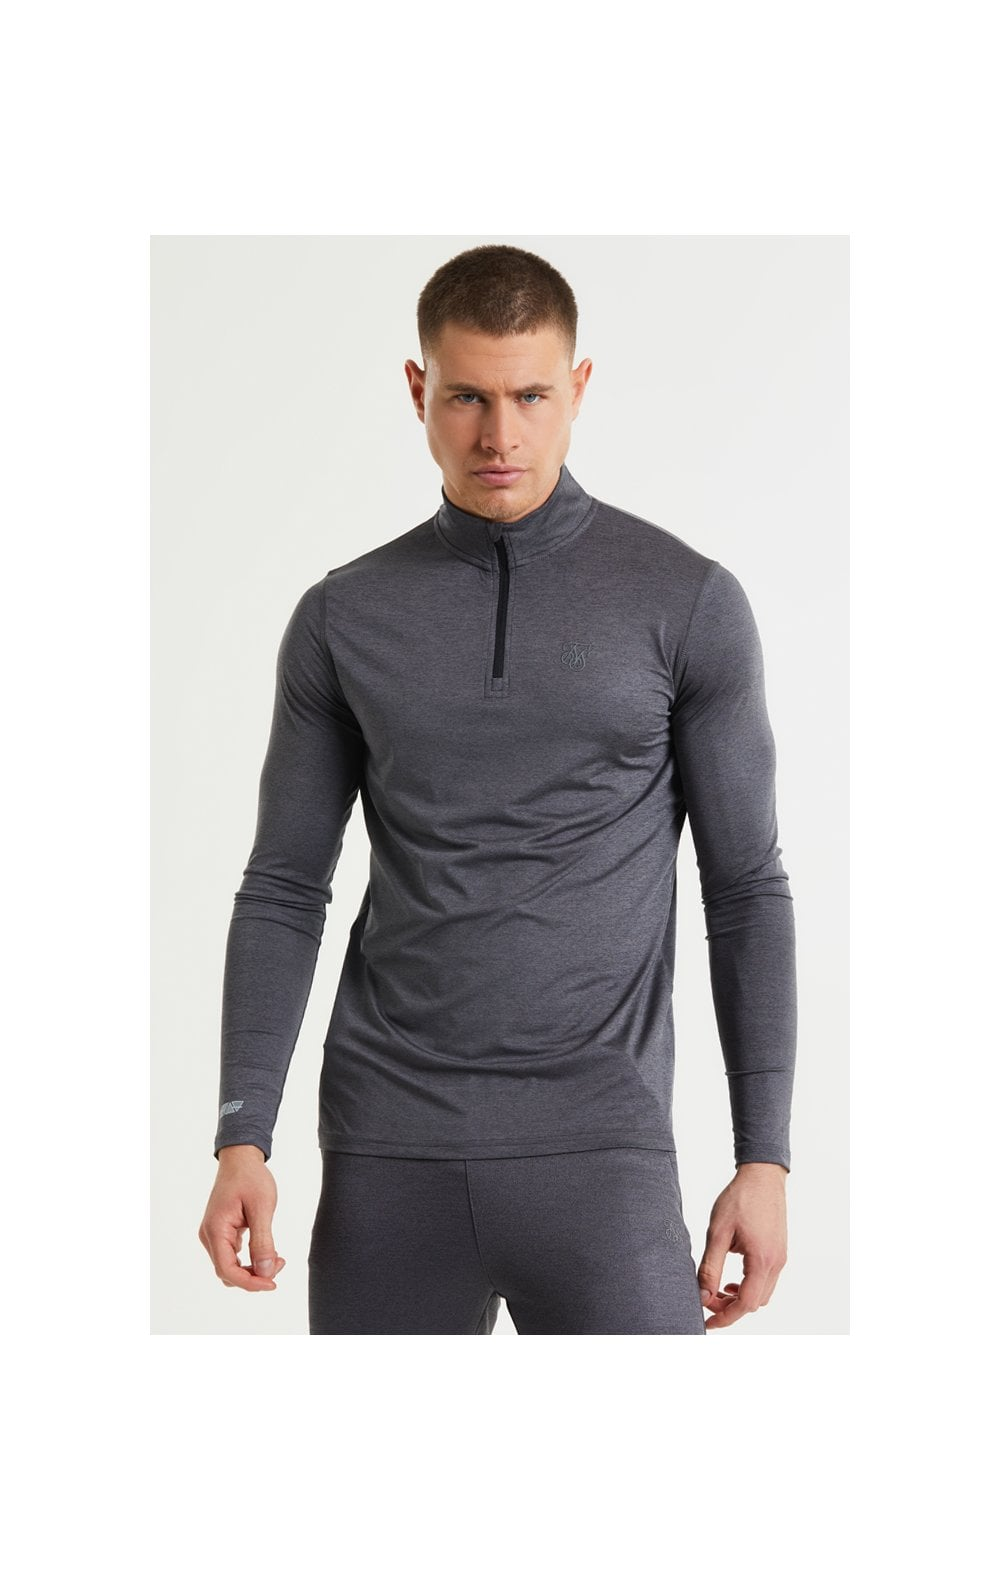 SikSilk Pressure Zip Funnel Neck - Charcoal Marl (1)